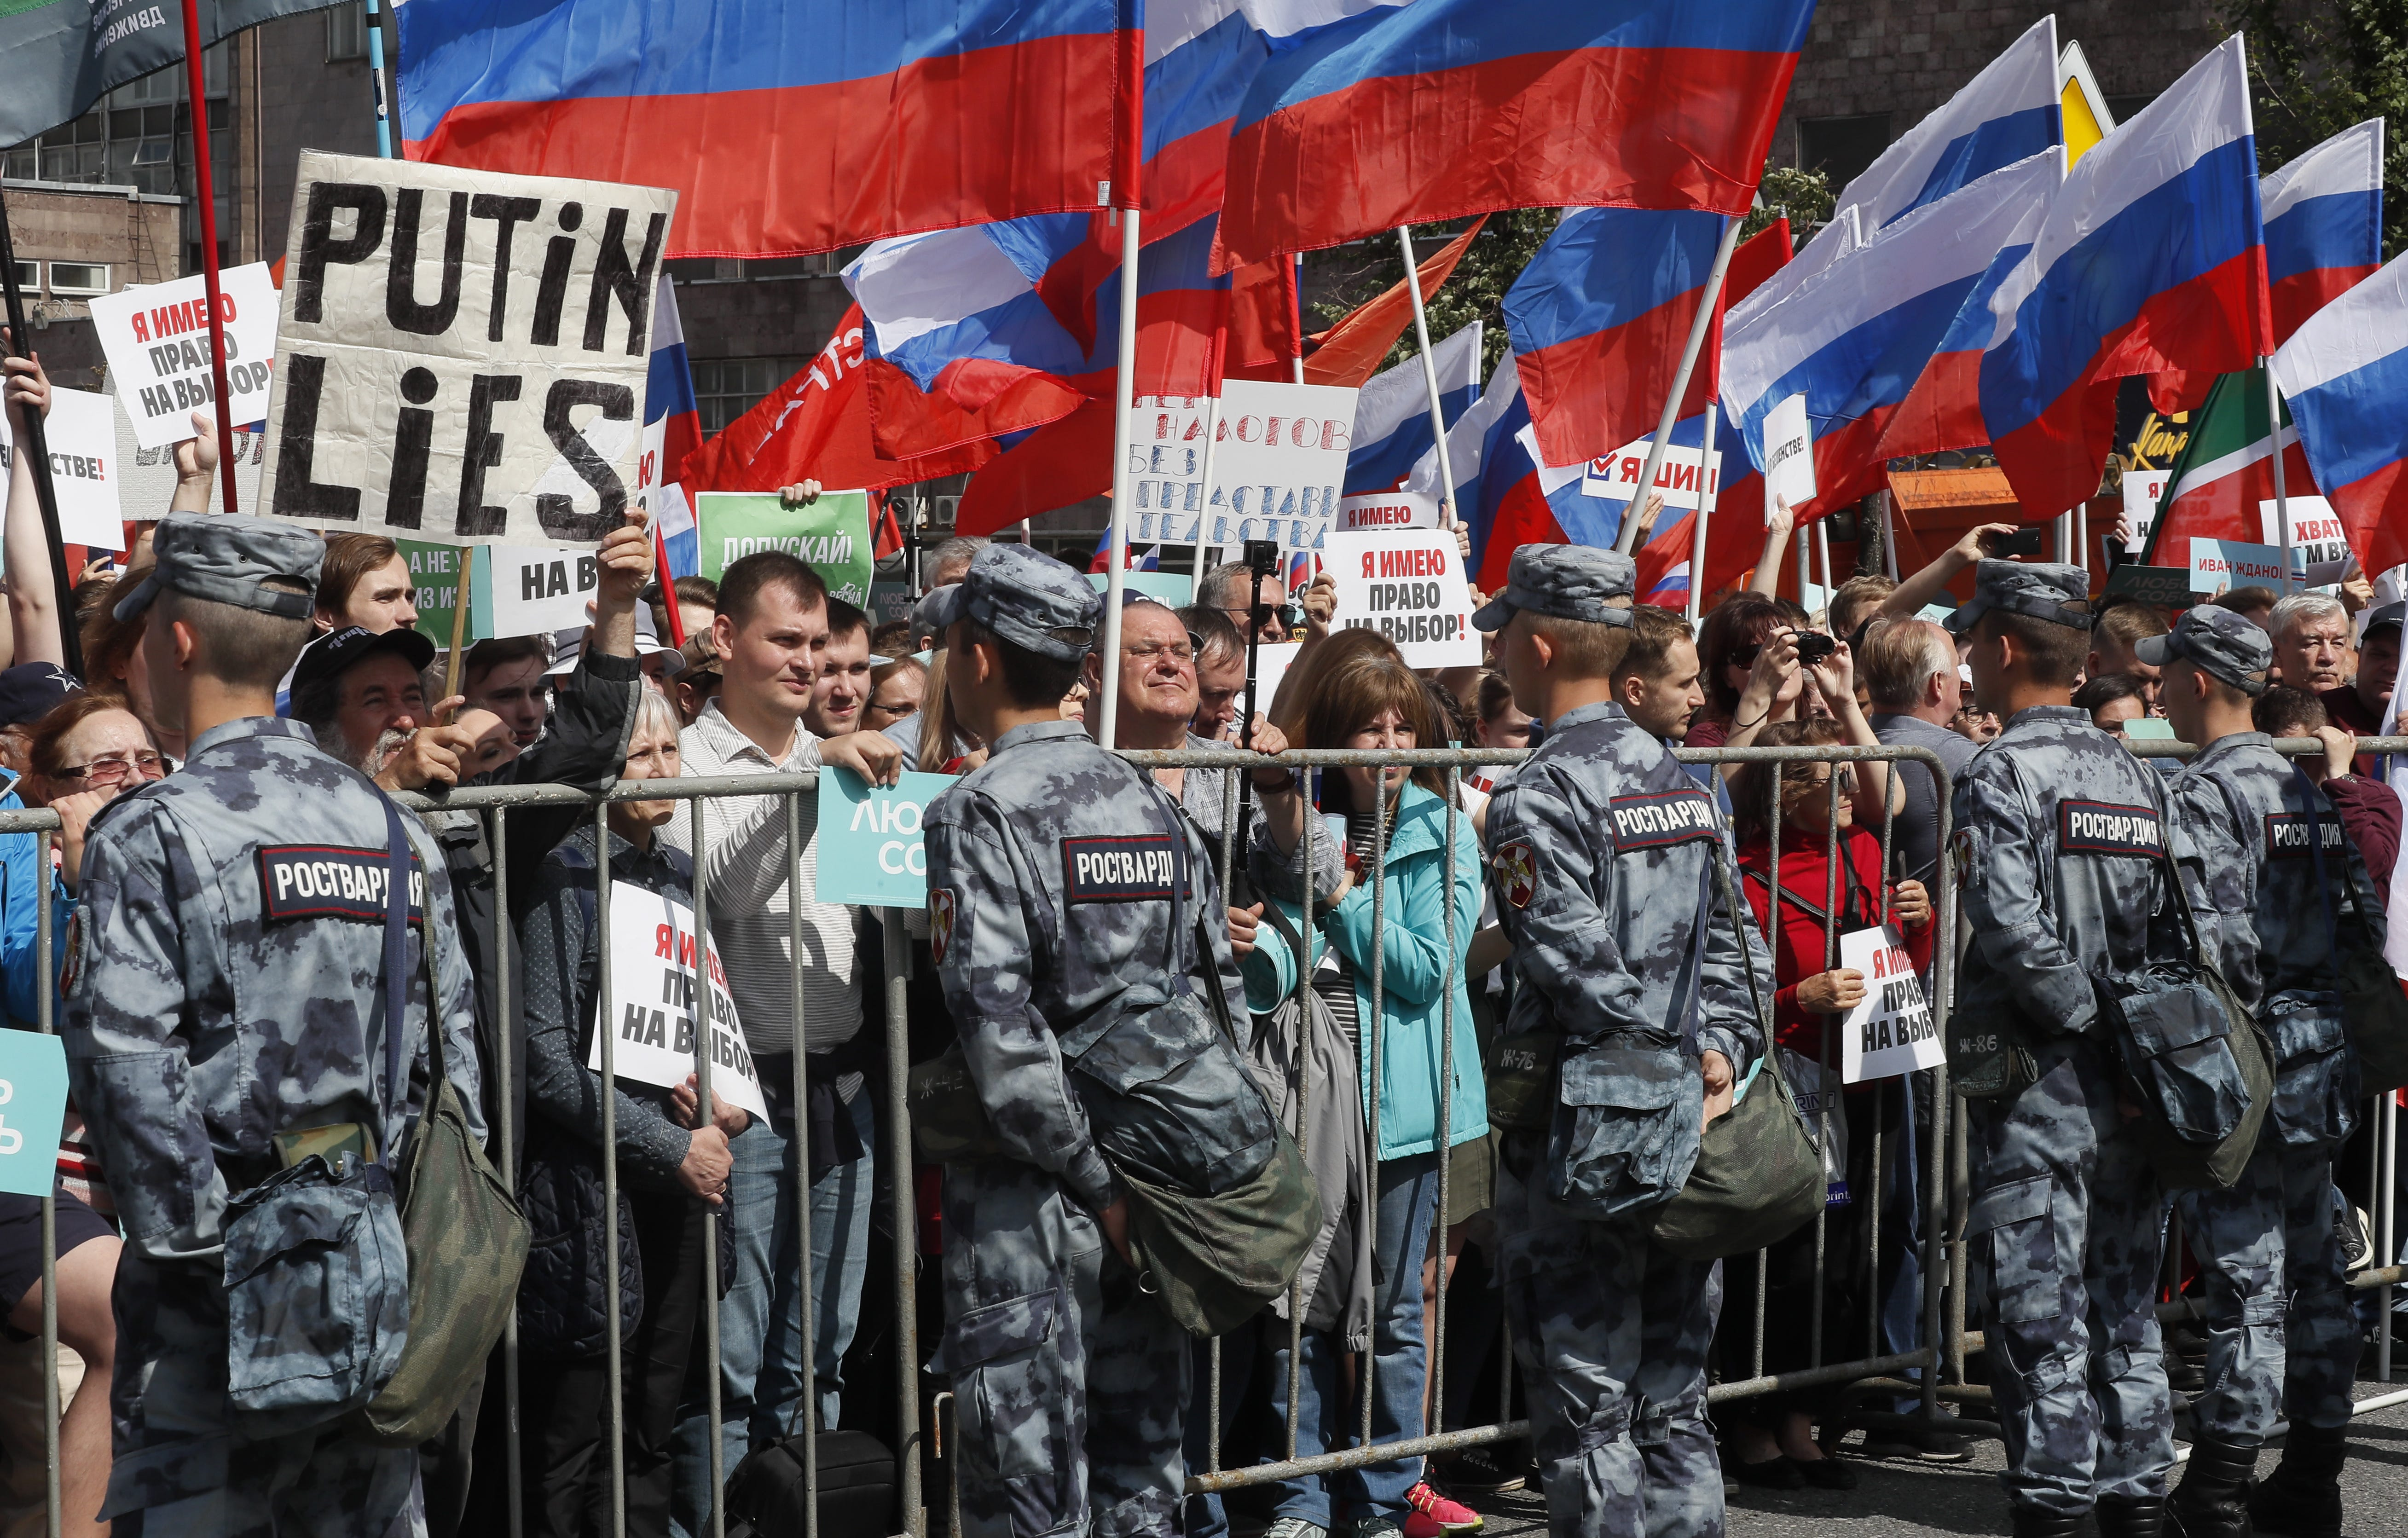 Thousands protest in Moscow after opposition figures barred from city council ballot